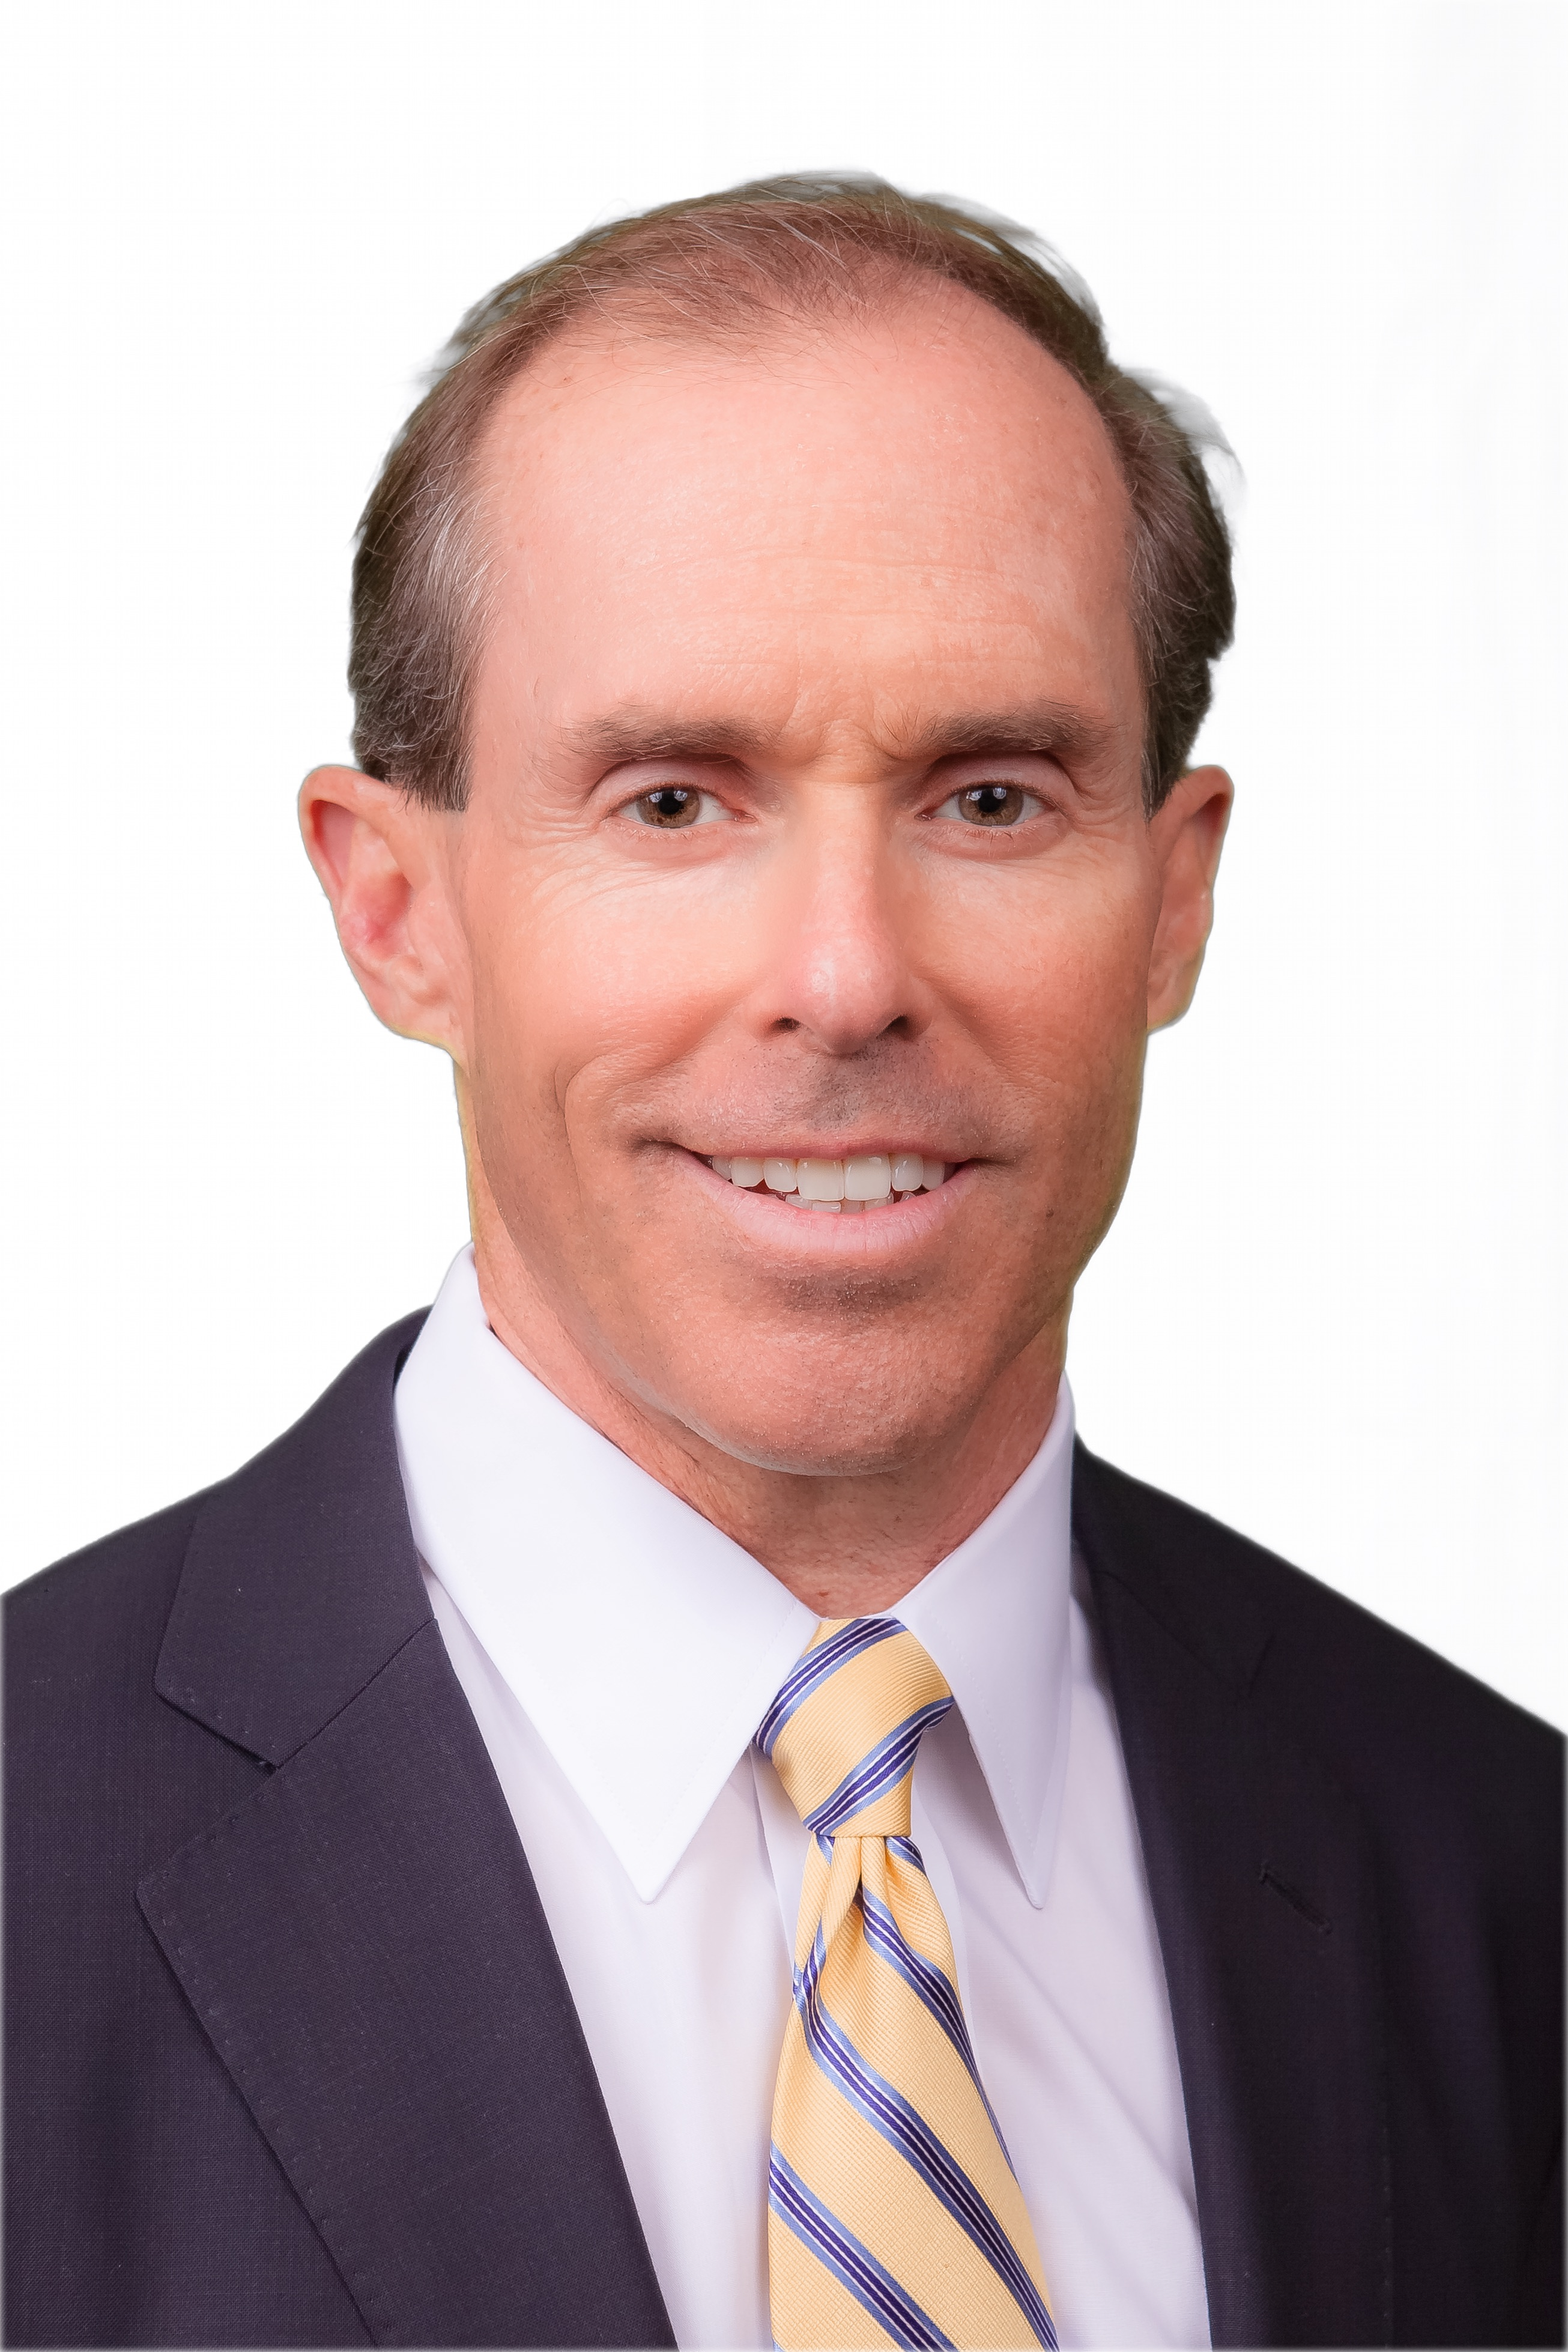 Frank R. Collier, MD